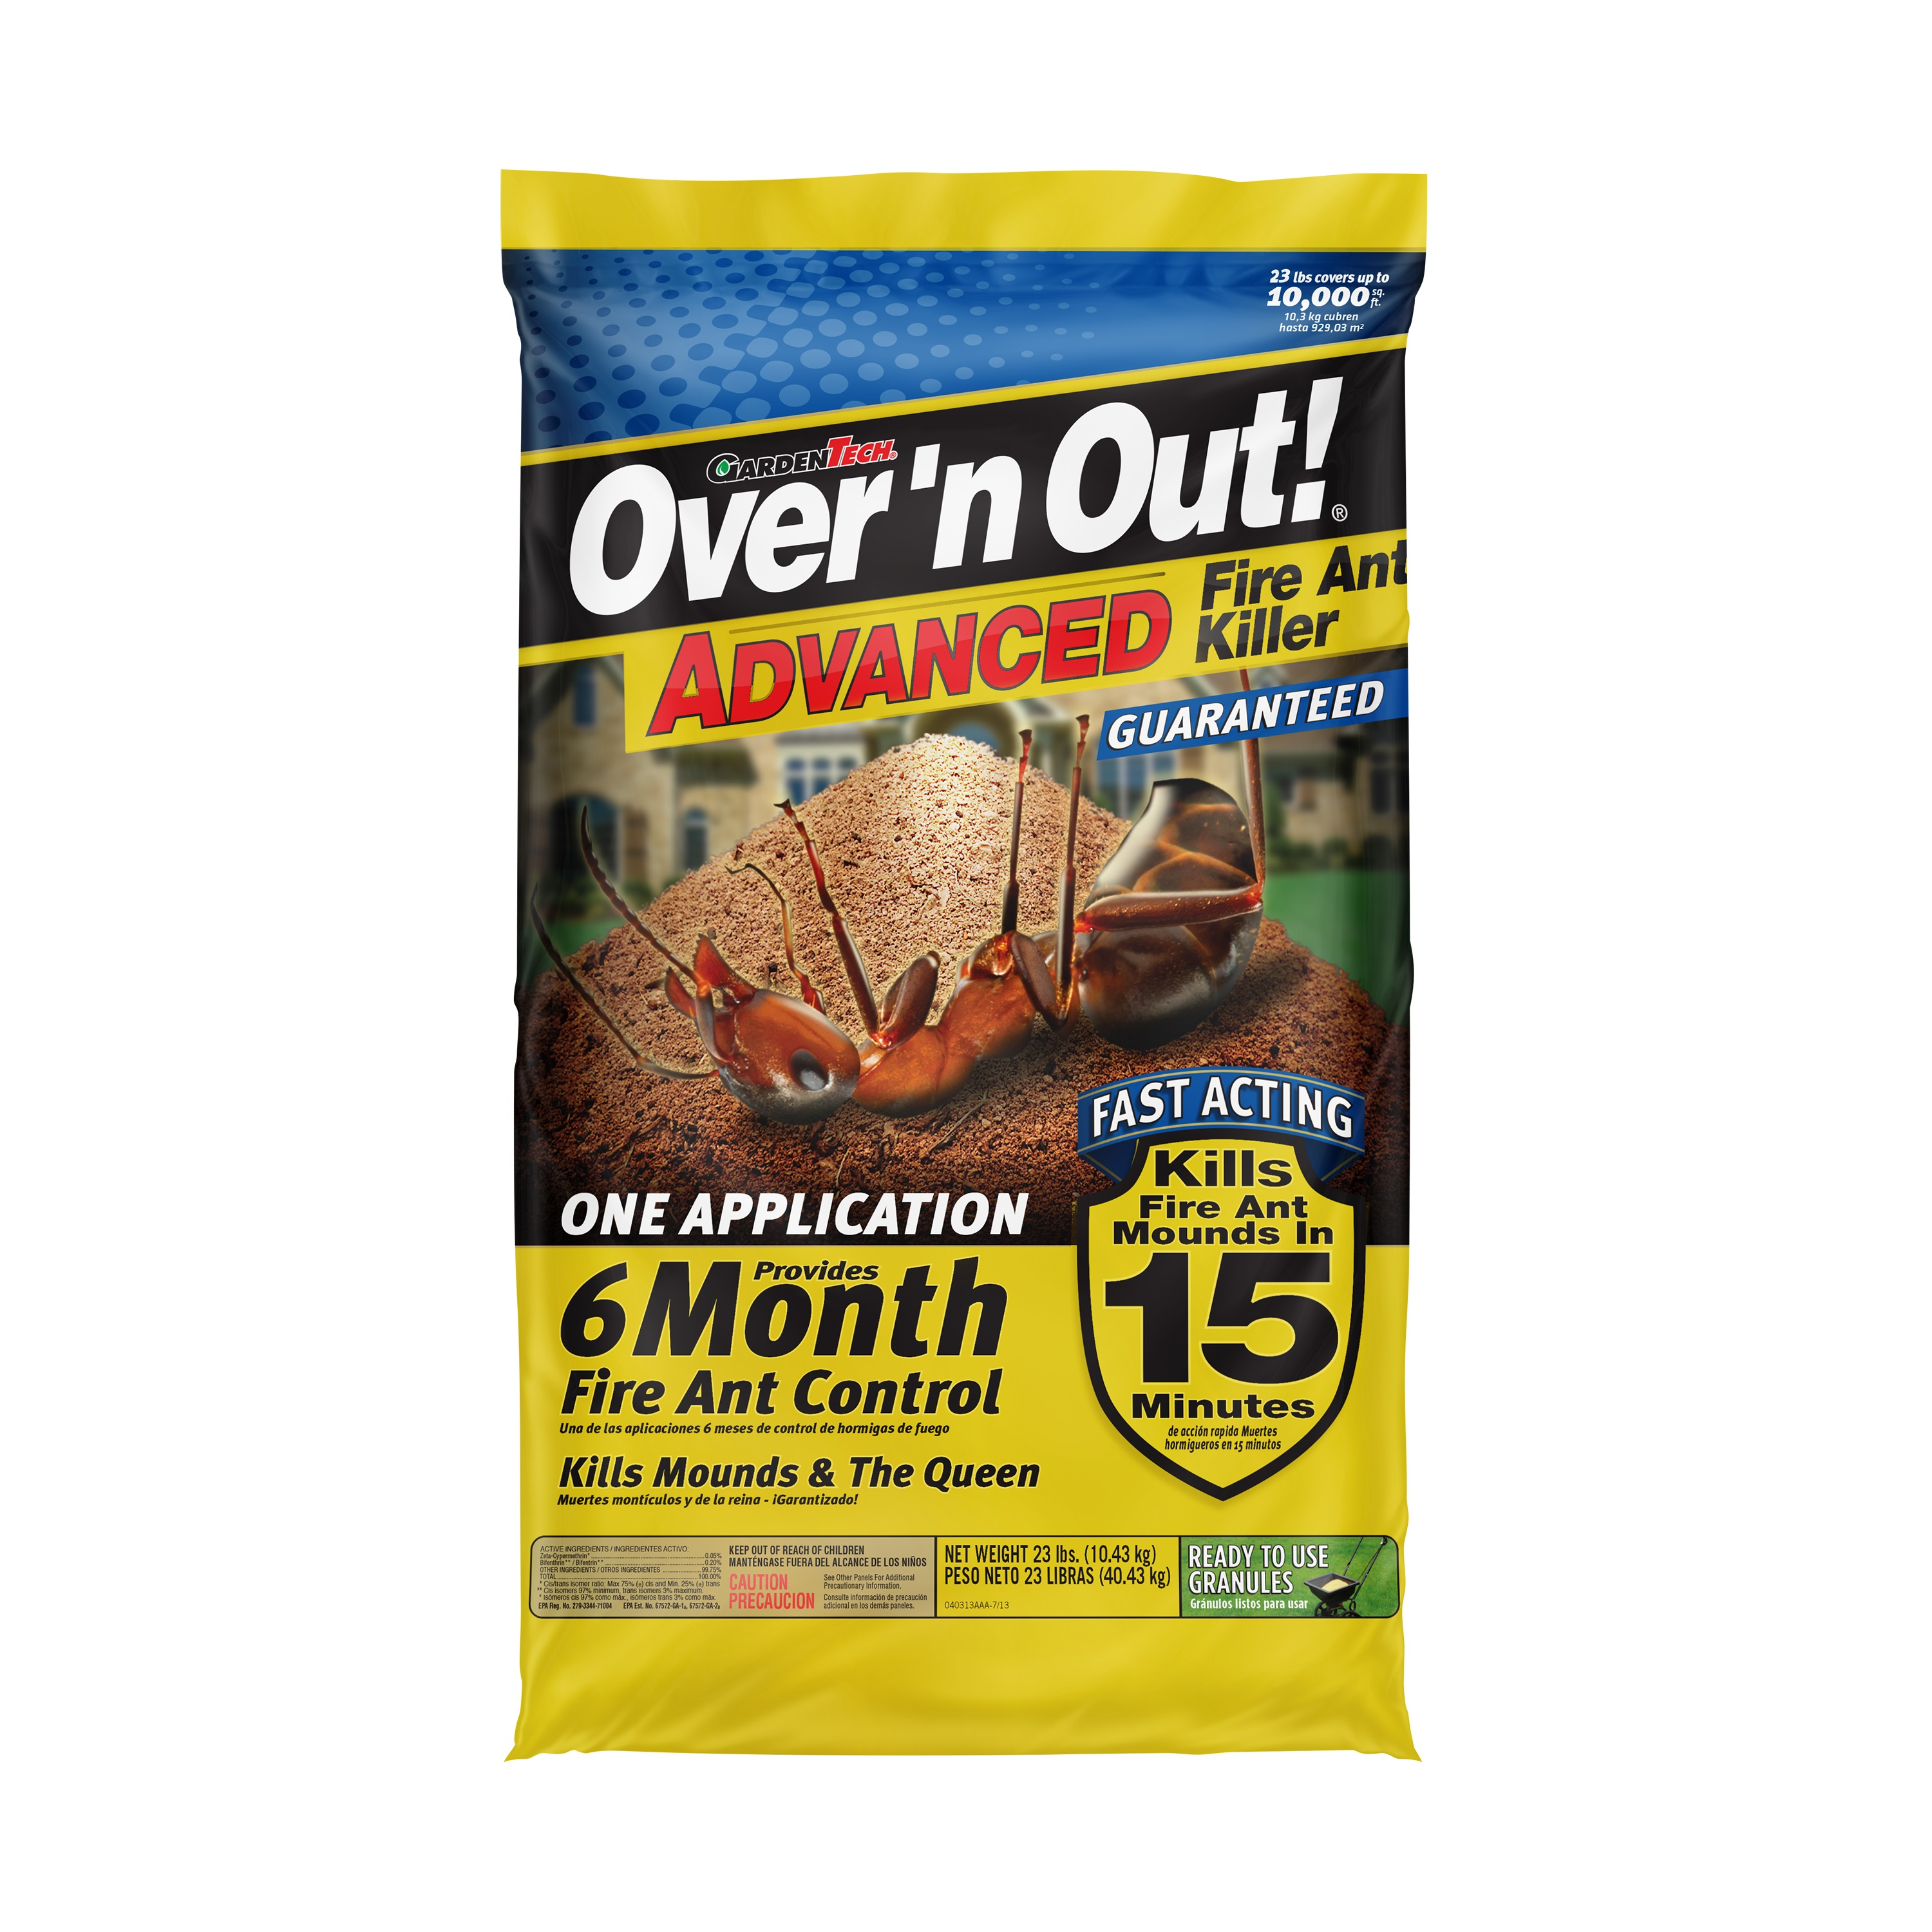 Over 'n Out Advanced Fire Ant Killer Ready to Use Granules, 23 Pounds